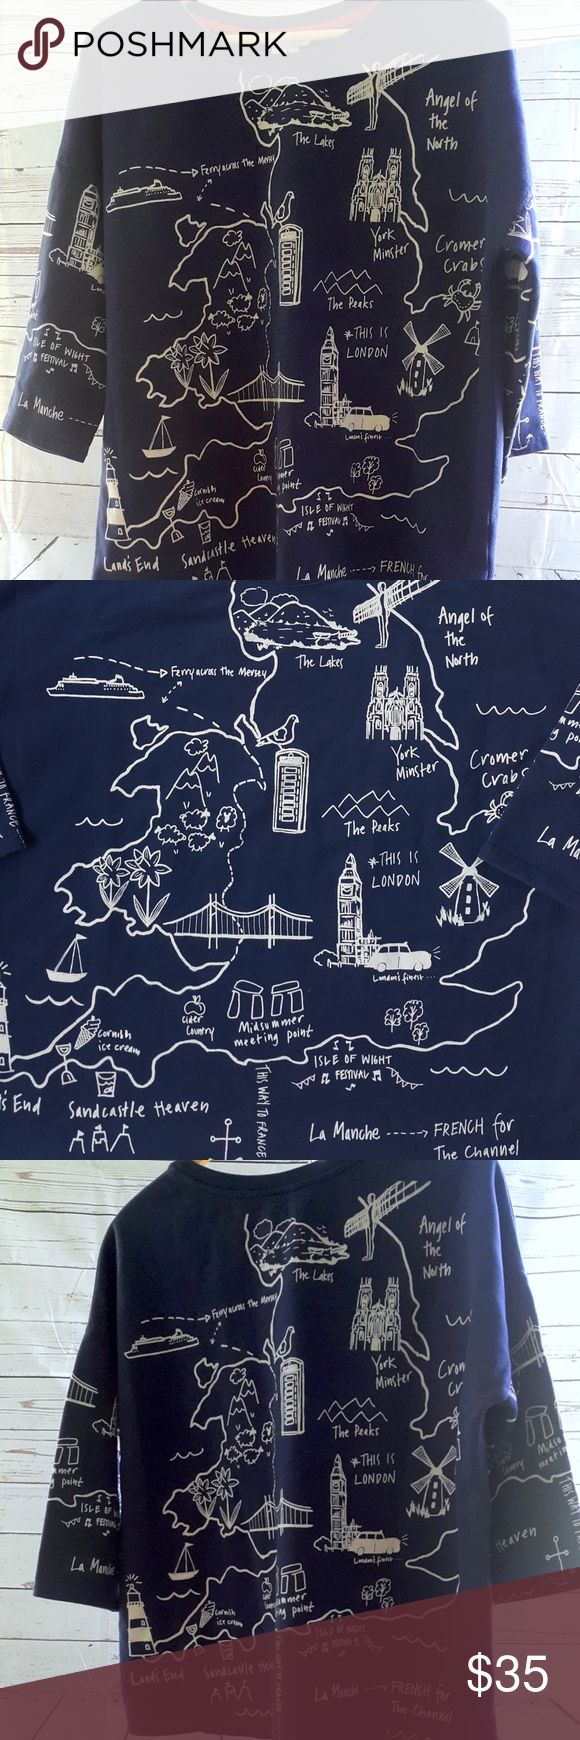 """Boden London destination landmarks navy sweatshirt Limited edition Boden London destination landmarks navy and white sweatshirt. 100% cotton 3/4 sleeve sweatshirt in excellent condition and very soft. Features popular destination spots in London...what a great sweatshirt.  Size 14 (US)  Measurements are approximate (laying flat): armpit to armpit: 25 1/2"""" shoulder to hem: 25 1/4"""" shoulder to cuff: 15""""  B5 Boden Tops Sweatshirts & Hoodies"""